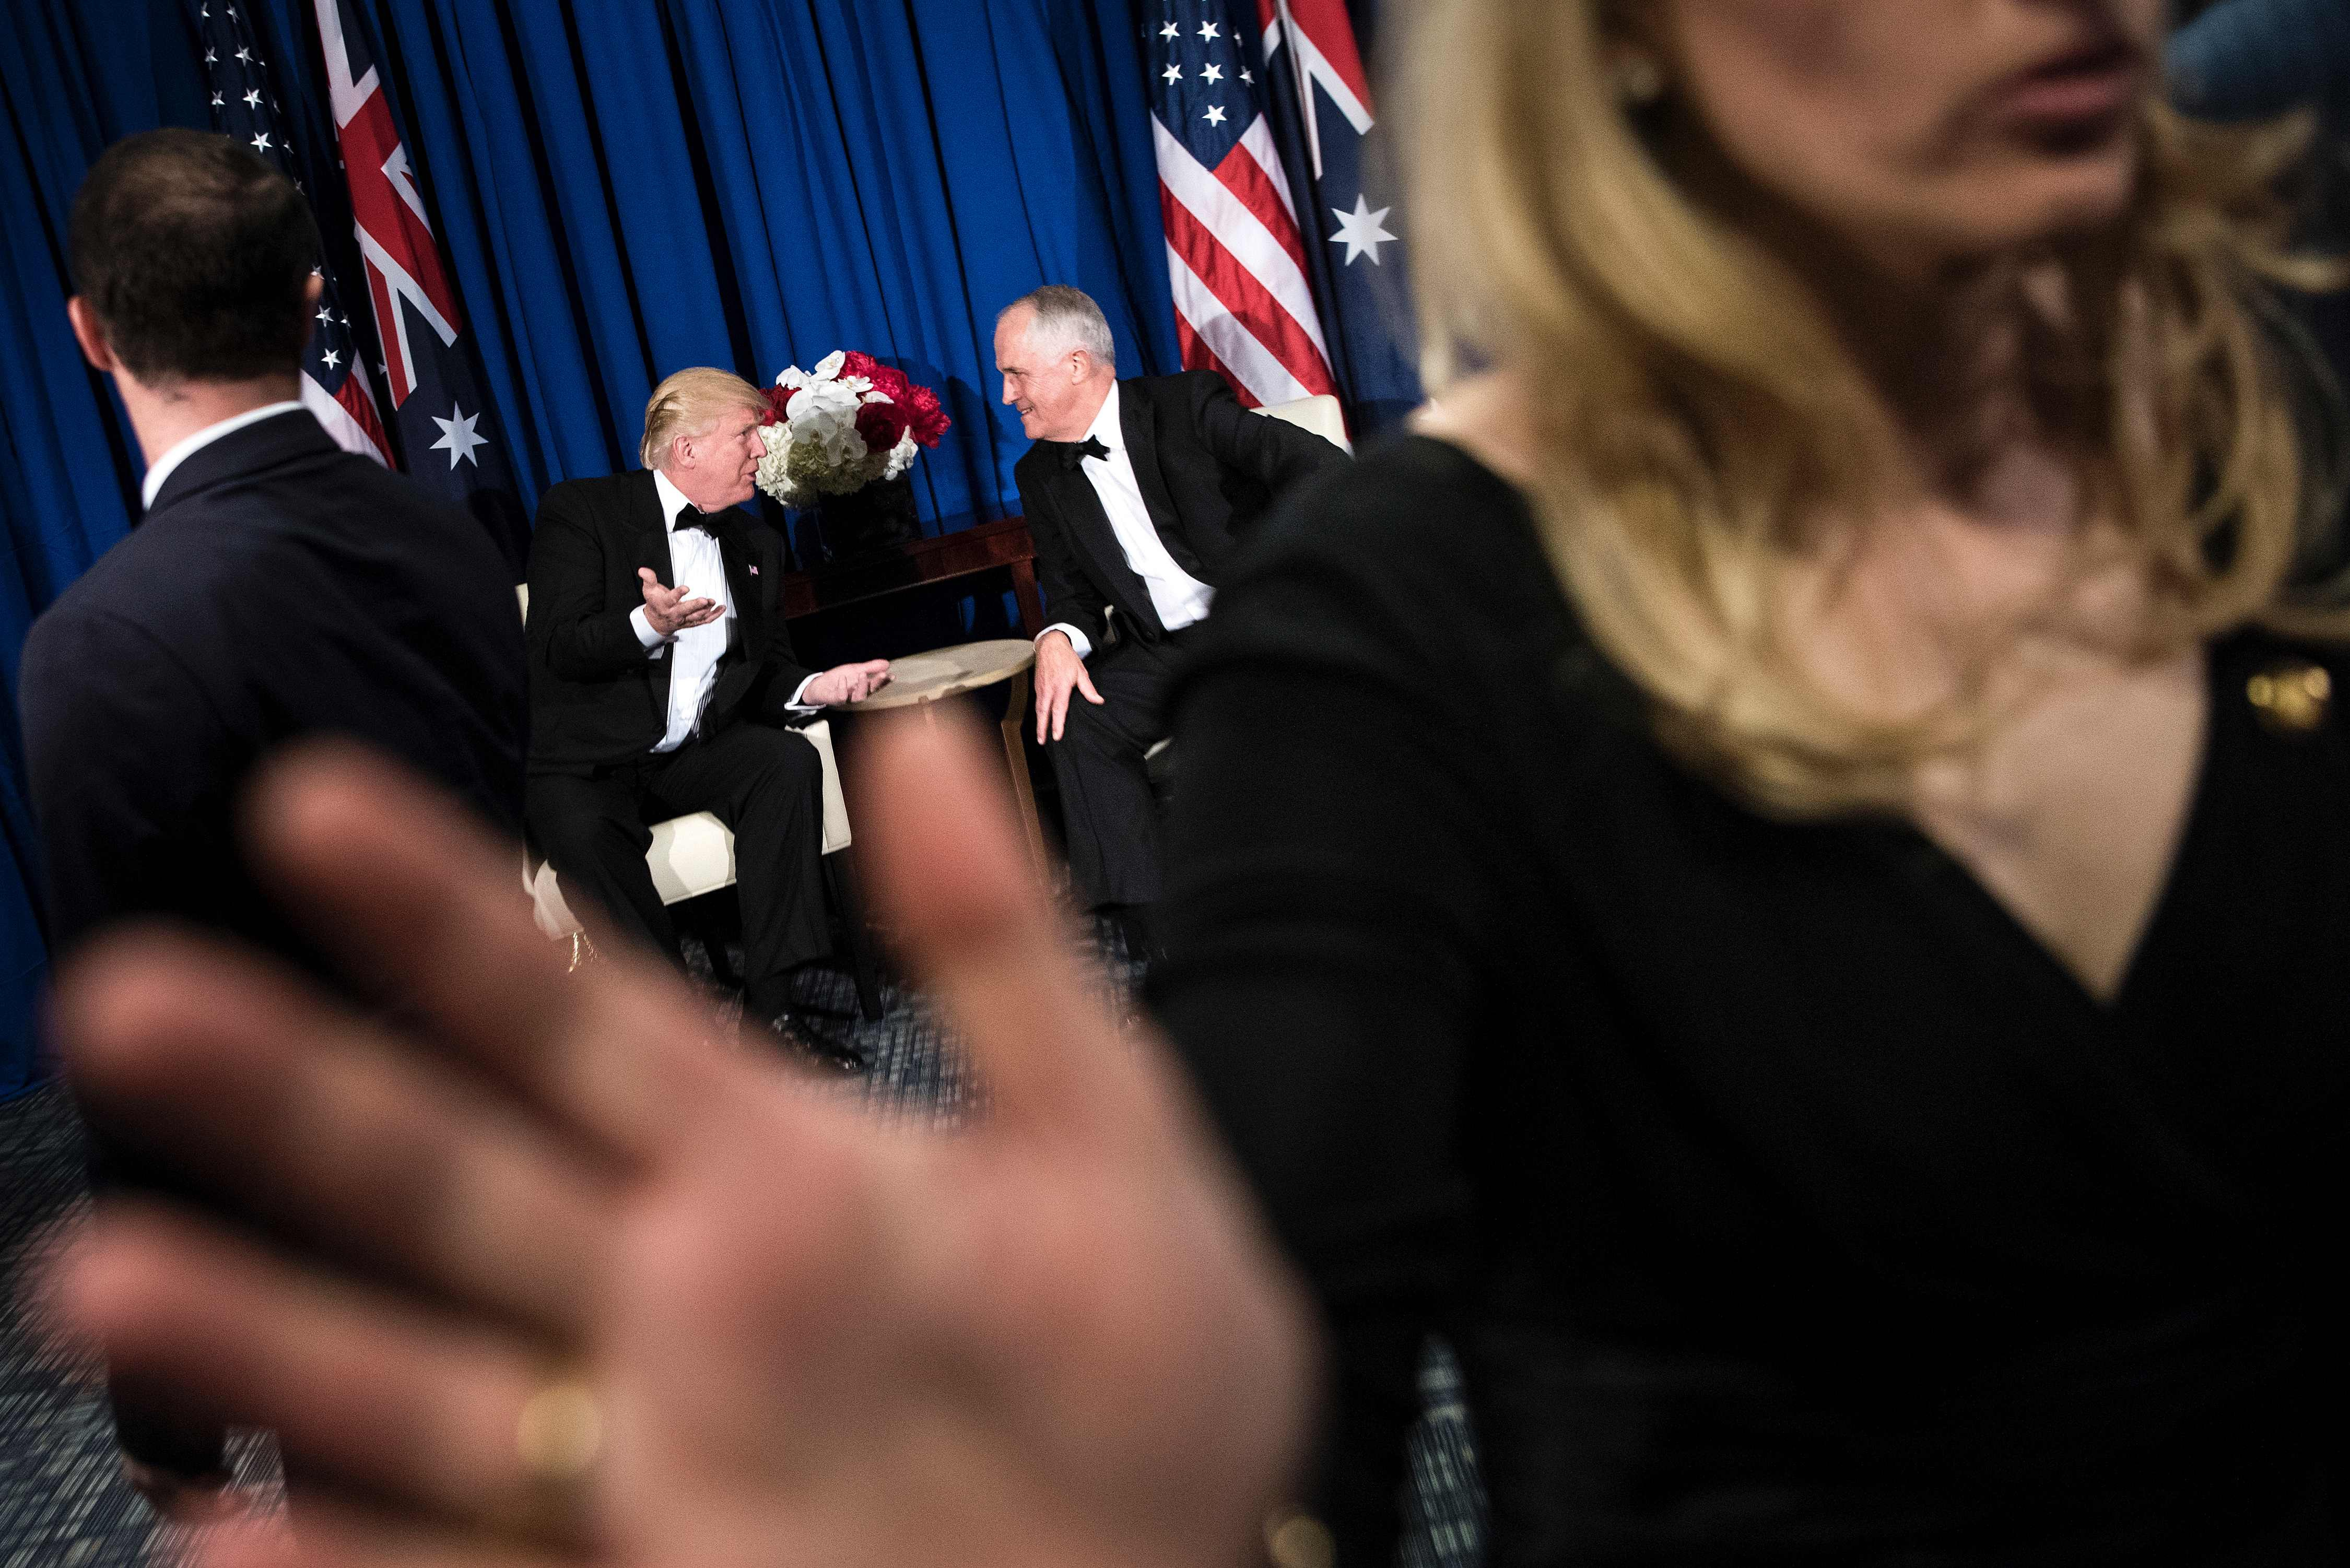 TOPSHOT - Australia's Prime Minister Malcolm Turnbull (R) confers with US President Donald Trump on board the Intrepid Sea, Air and Space Museum May 4, 2017 in New York, New York. / AFP PHOTO / Brendan Smialowski / TT / kod 444